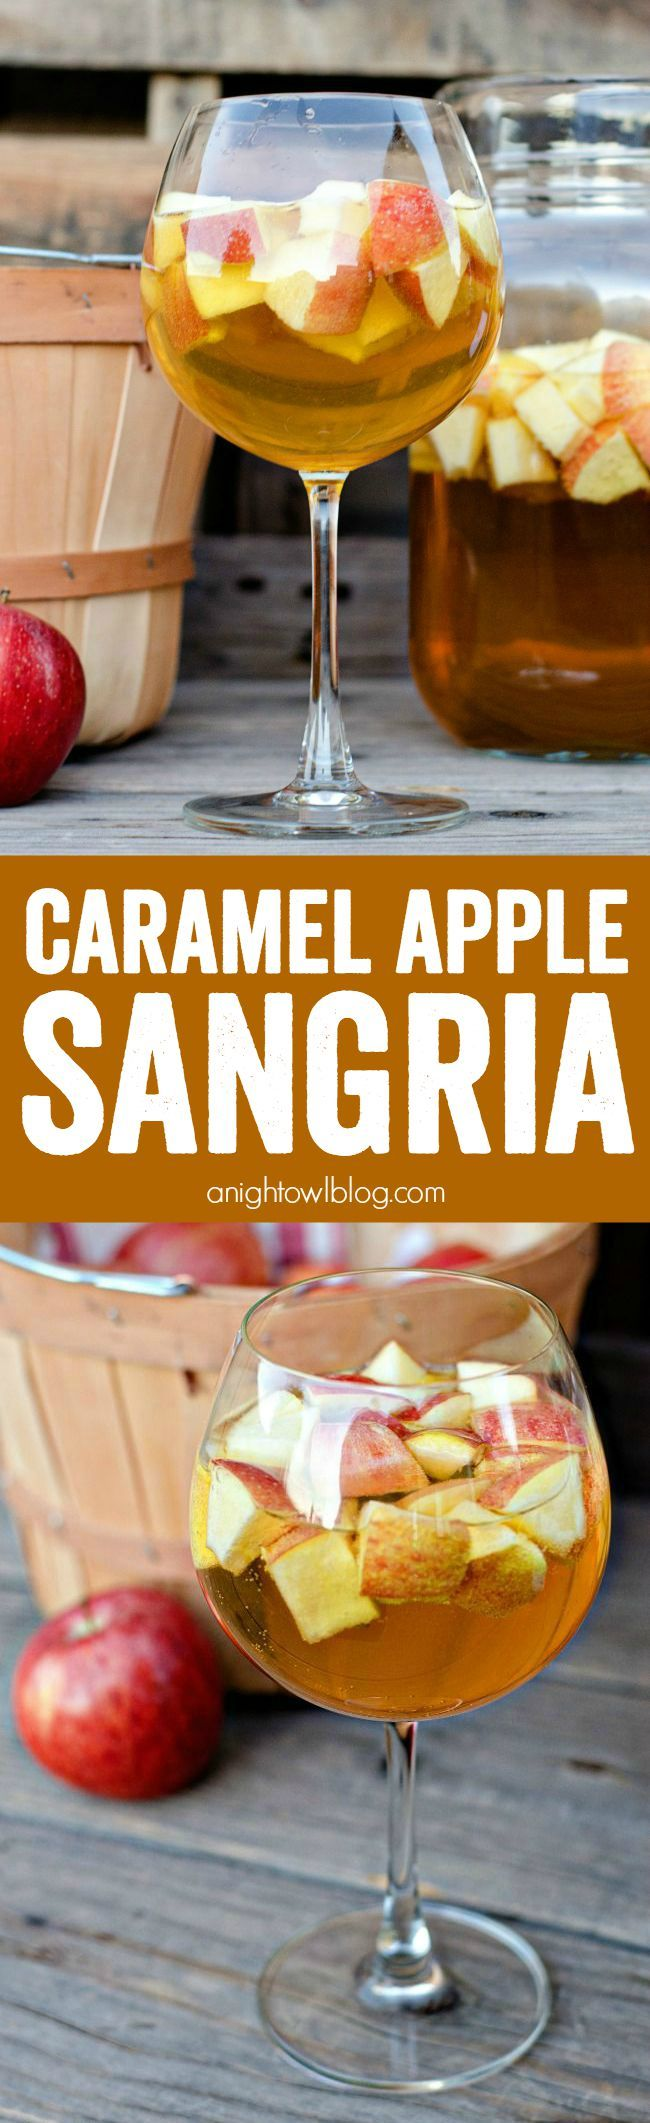 nike 6037 eyeglasses Caramel Apple Sangria   a delicious combination of your favorite flavors for fall in one delicious drink